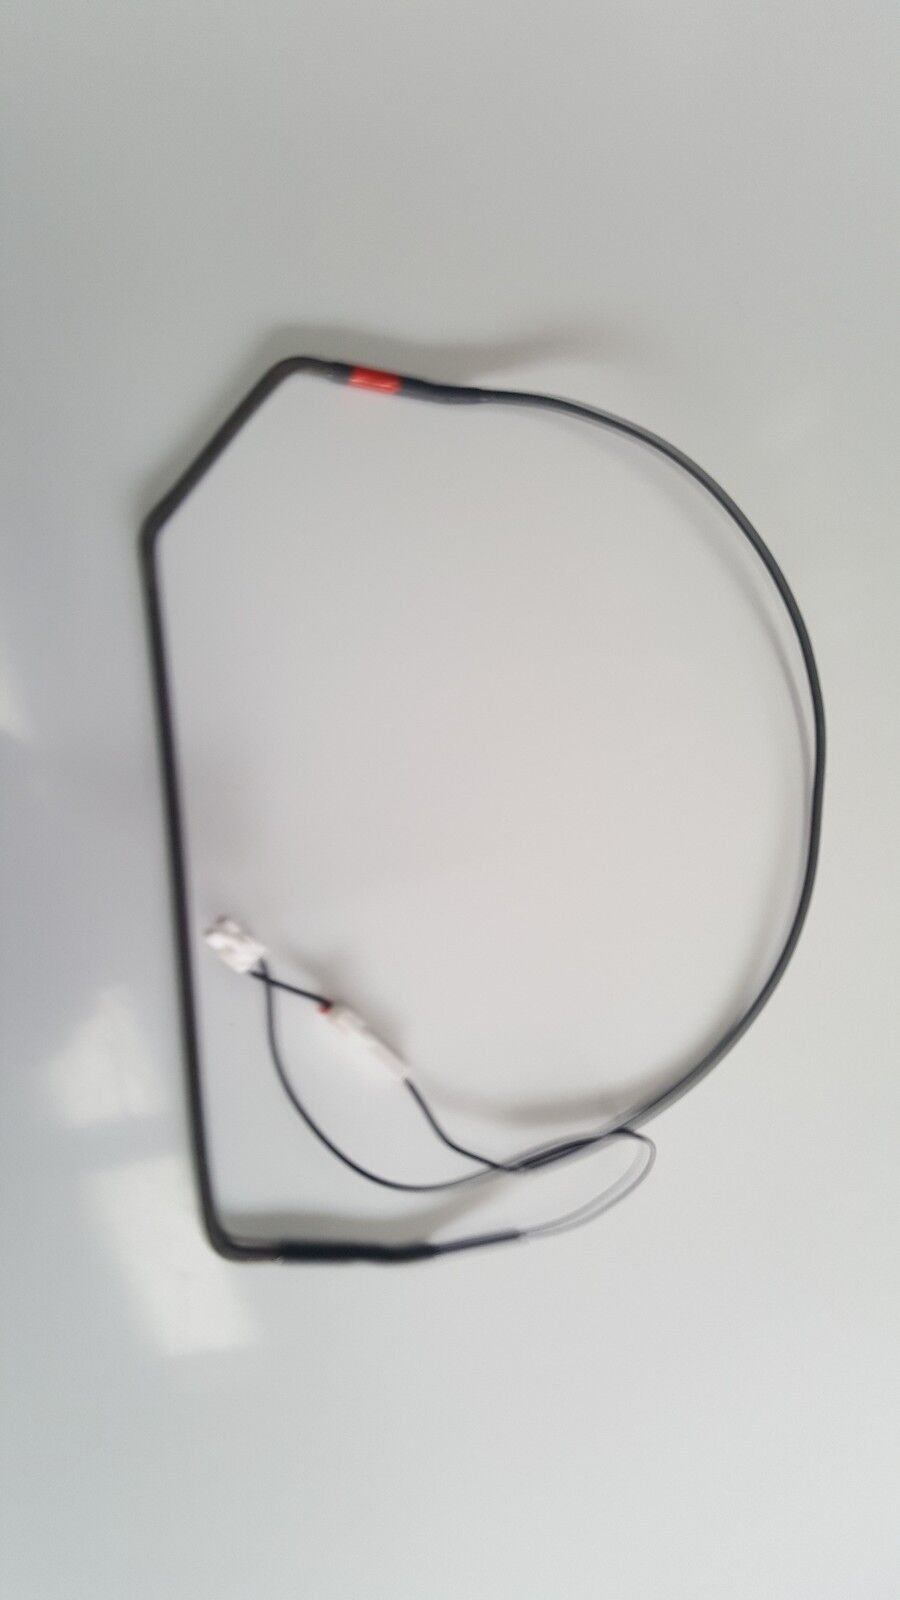 GENUINE LG NO FROST DE-FROST HEATER WITH  WIRED PLUG IN  ENDS SUIT GR 642ap